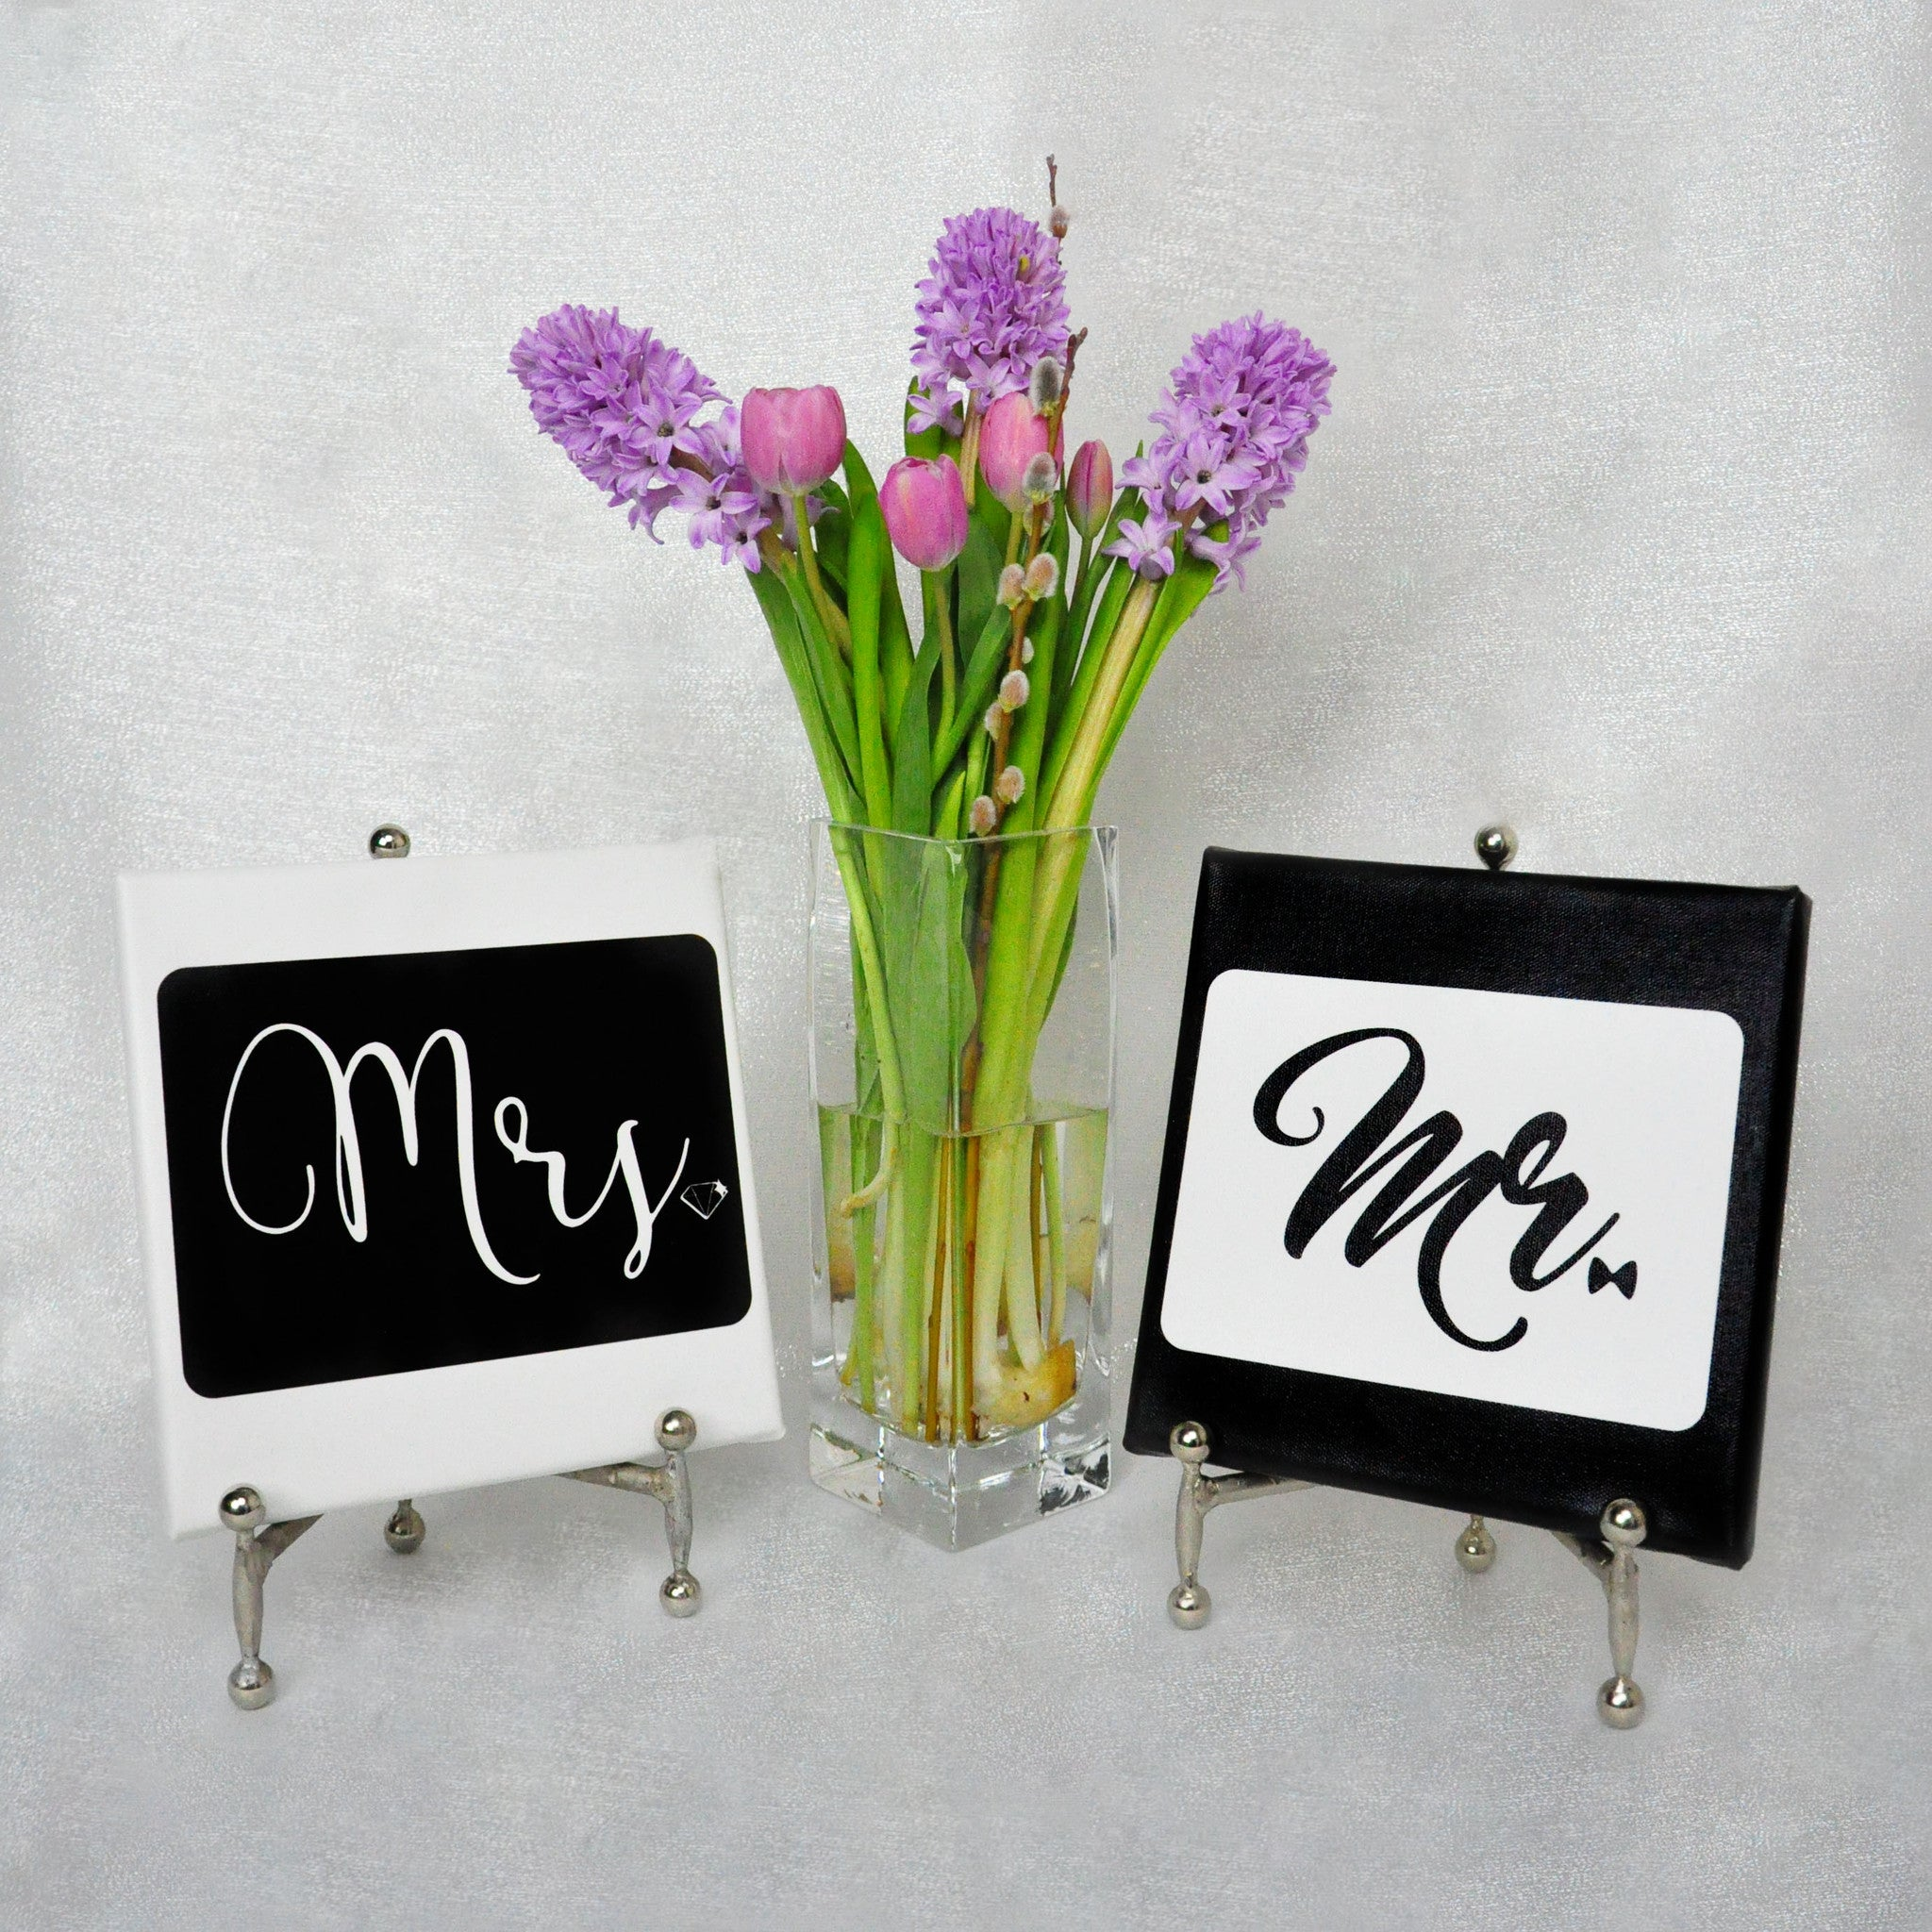 Mr. Stretch Canvas - LoveEmme, Product_Type, Product_Vendor